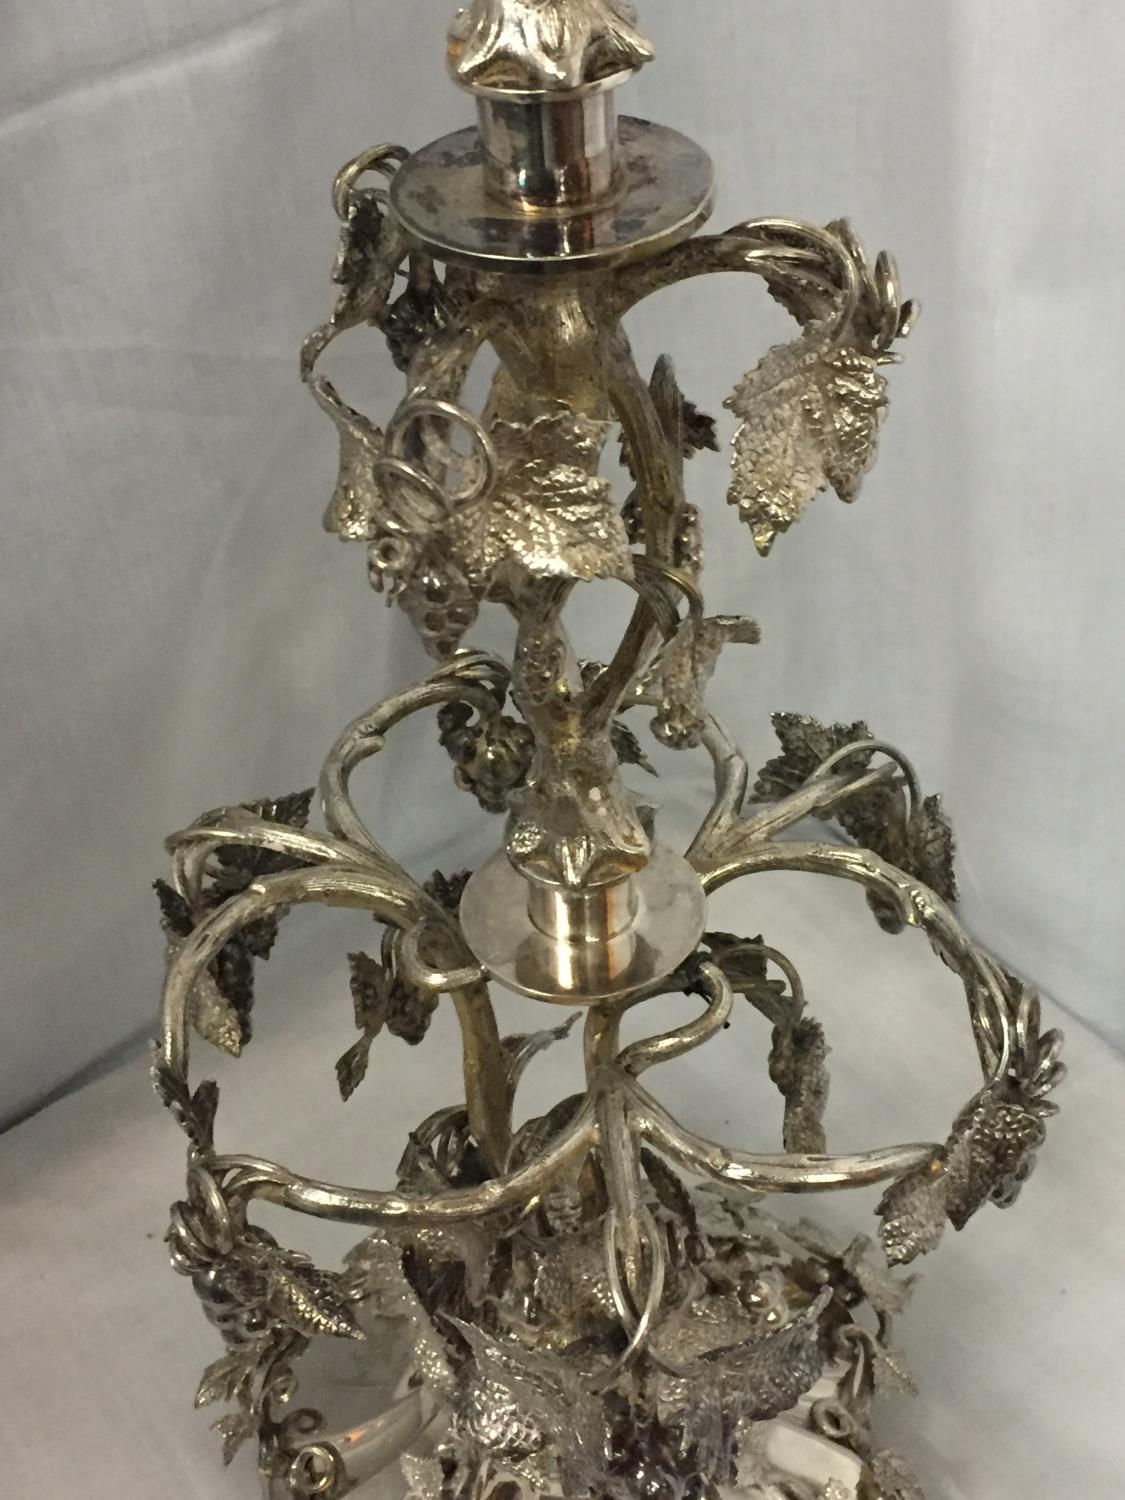 AN ORNATE SILVER PLATED EPERGENE WITH GLASS FLUTE HEIGHT 65CM - Image 4 of 5